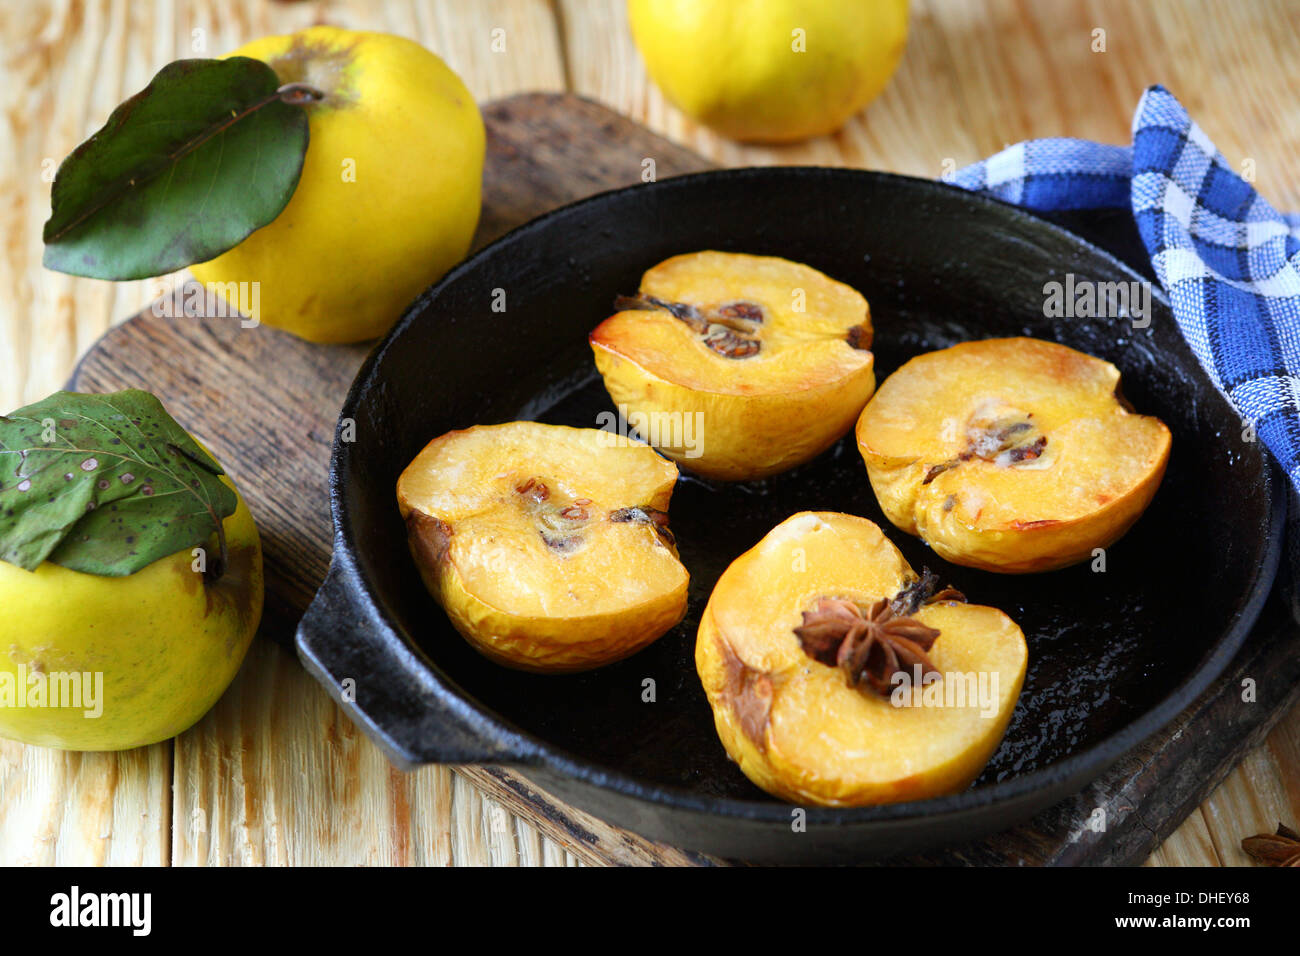 baked quince with honey in a pan, food - Stock Image